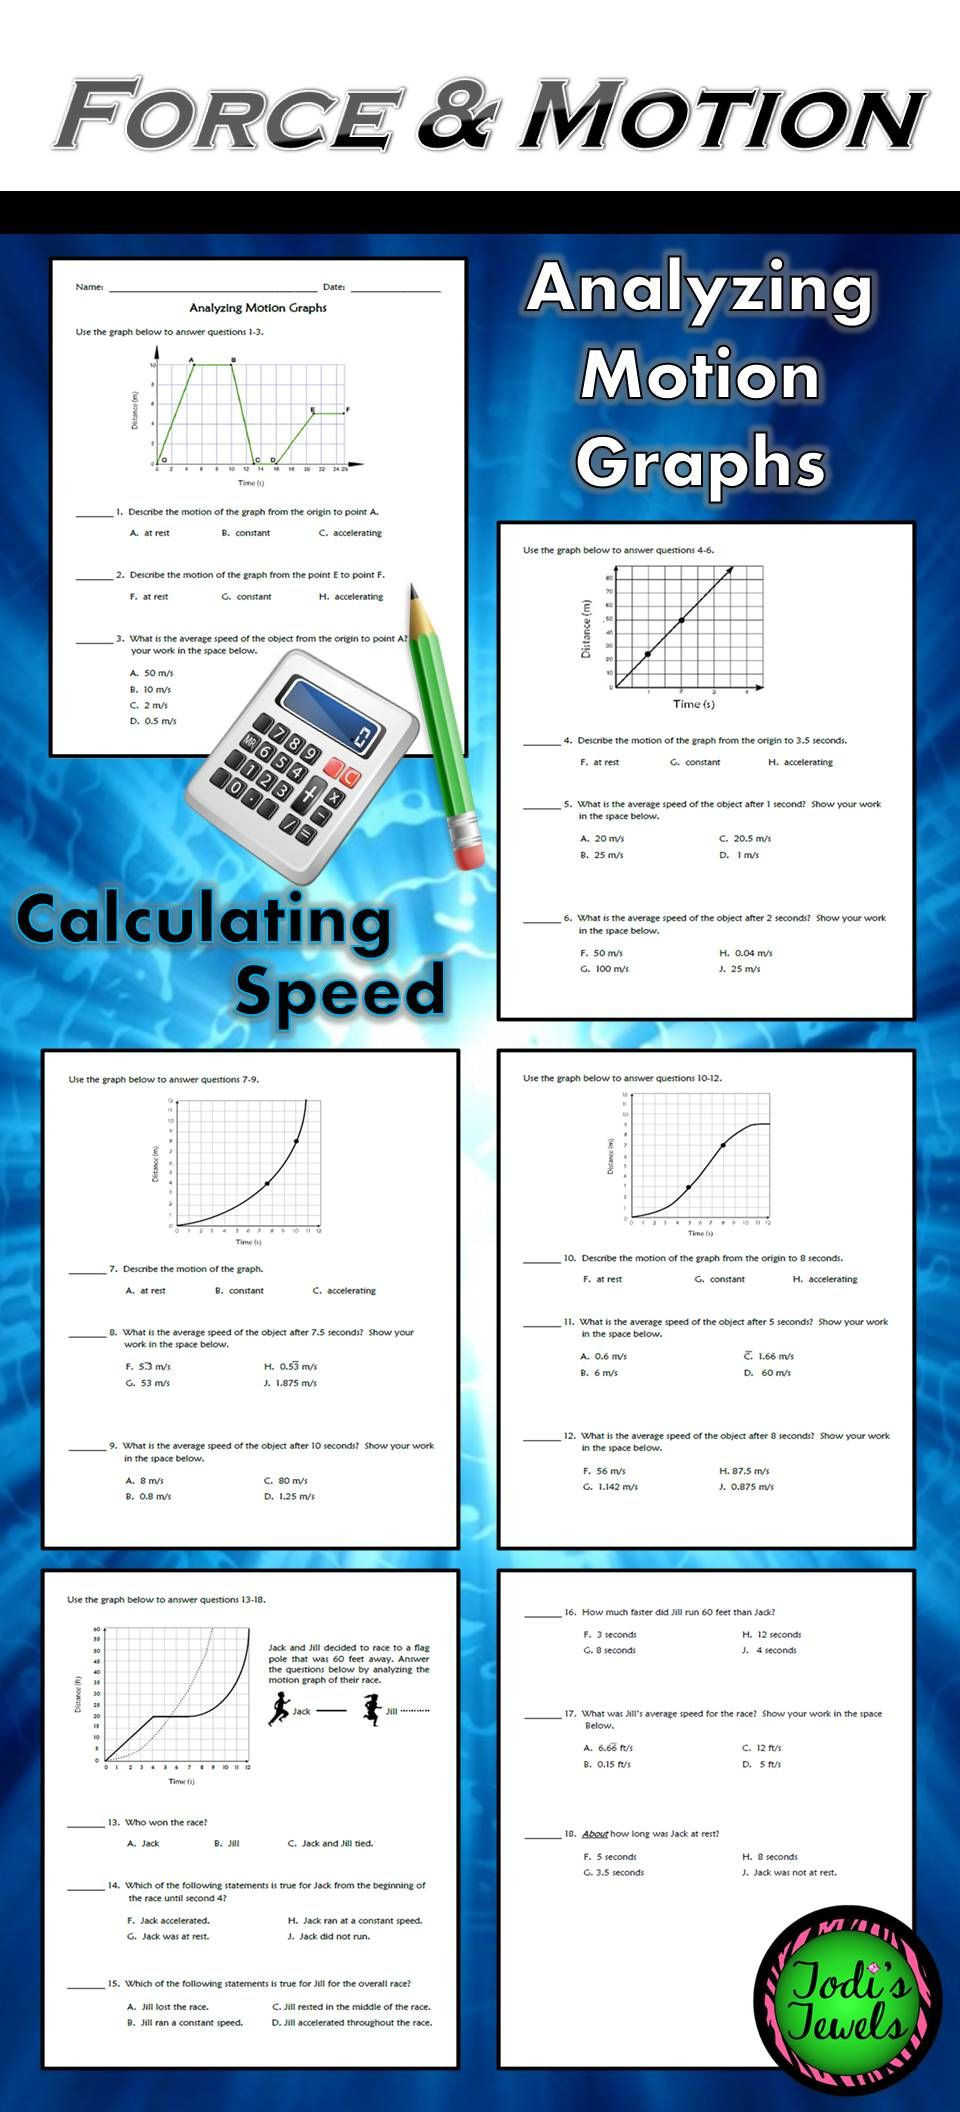 Motion Graphs Worksheet Answers Analyzing Motion Graphs & Calculating Speed Ws